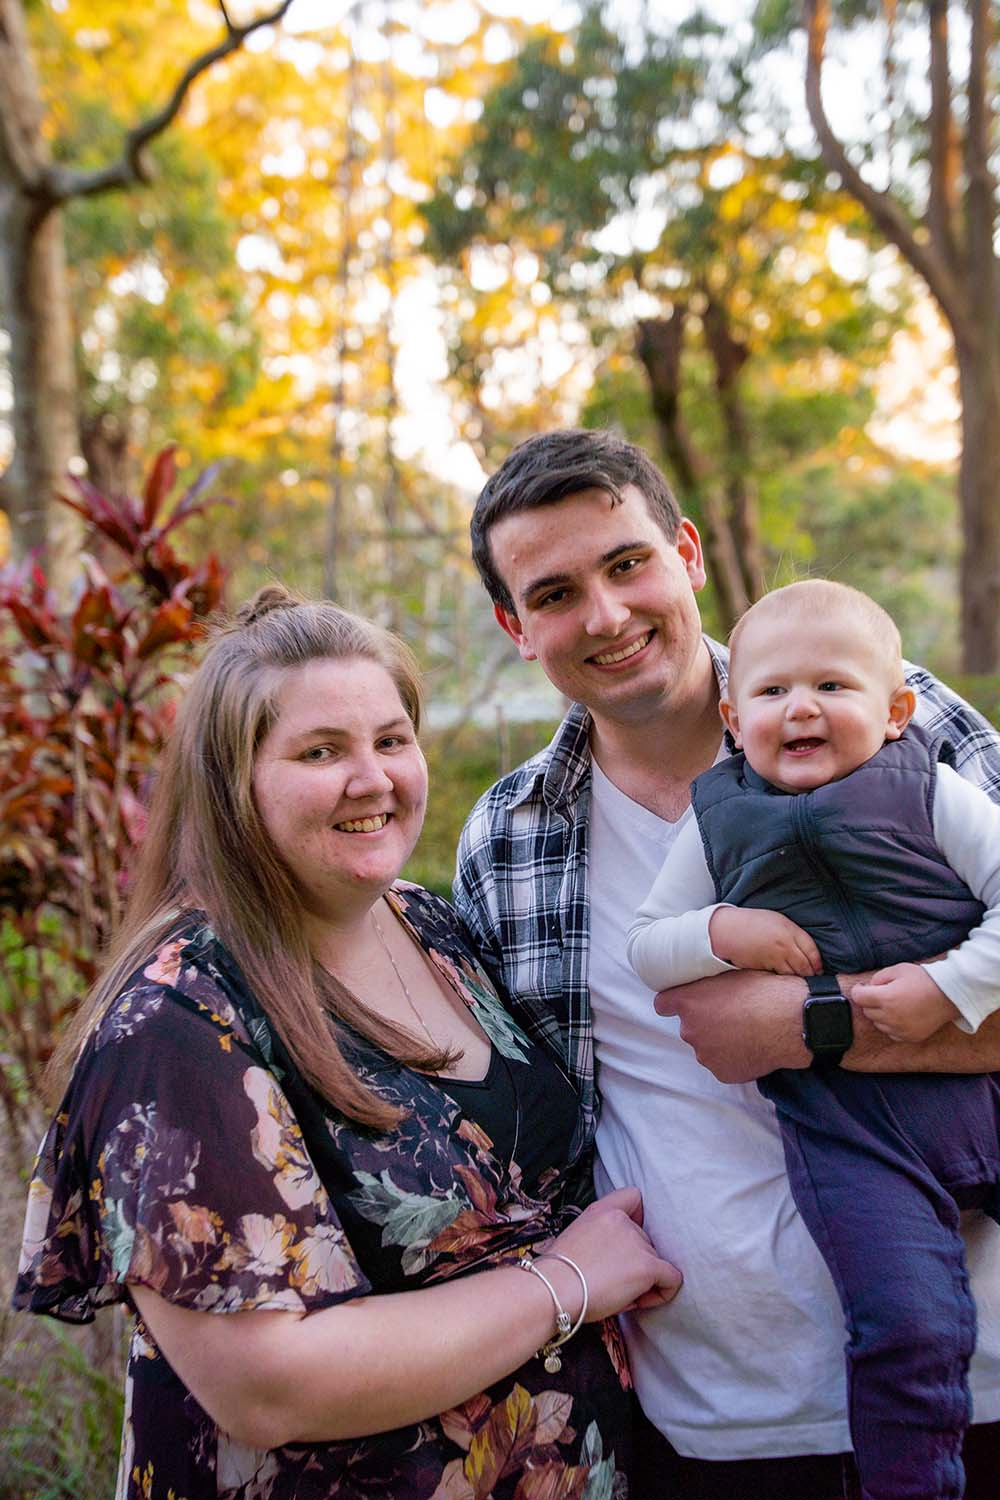 Family Photography - mother, father & child